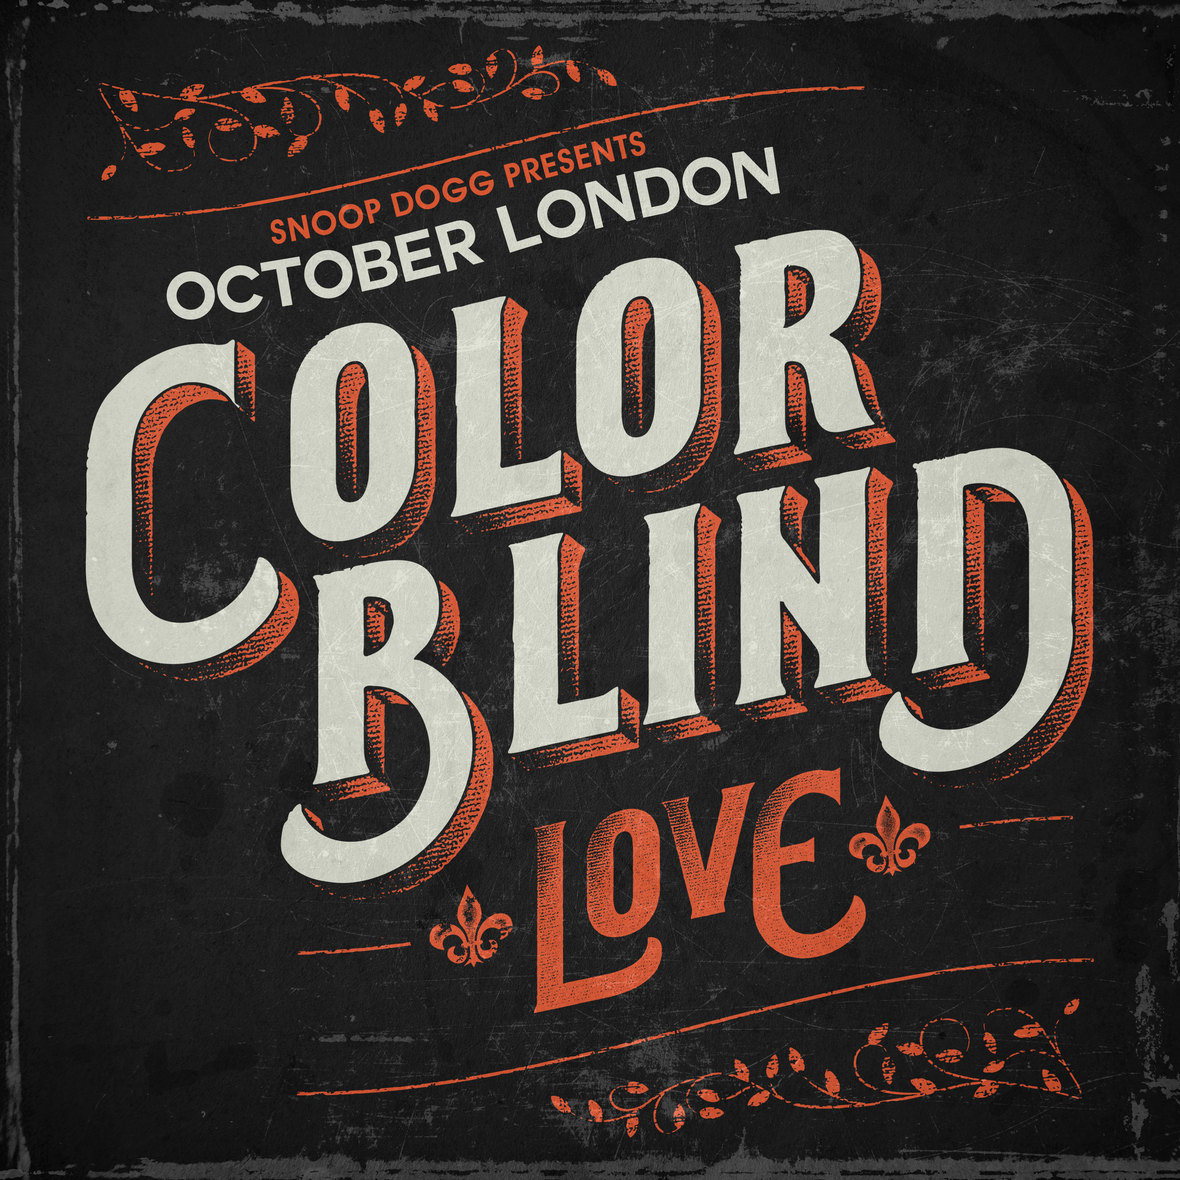 October London Color Blind Love